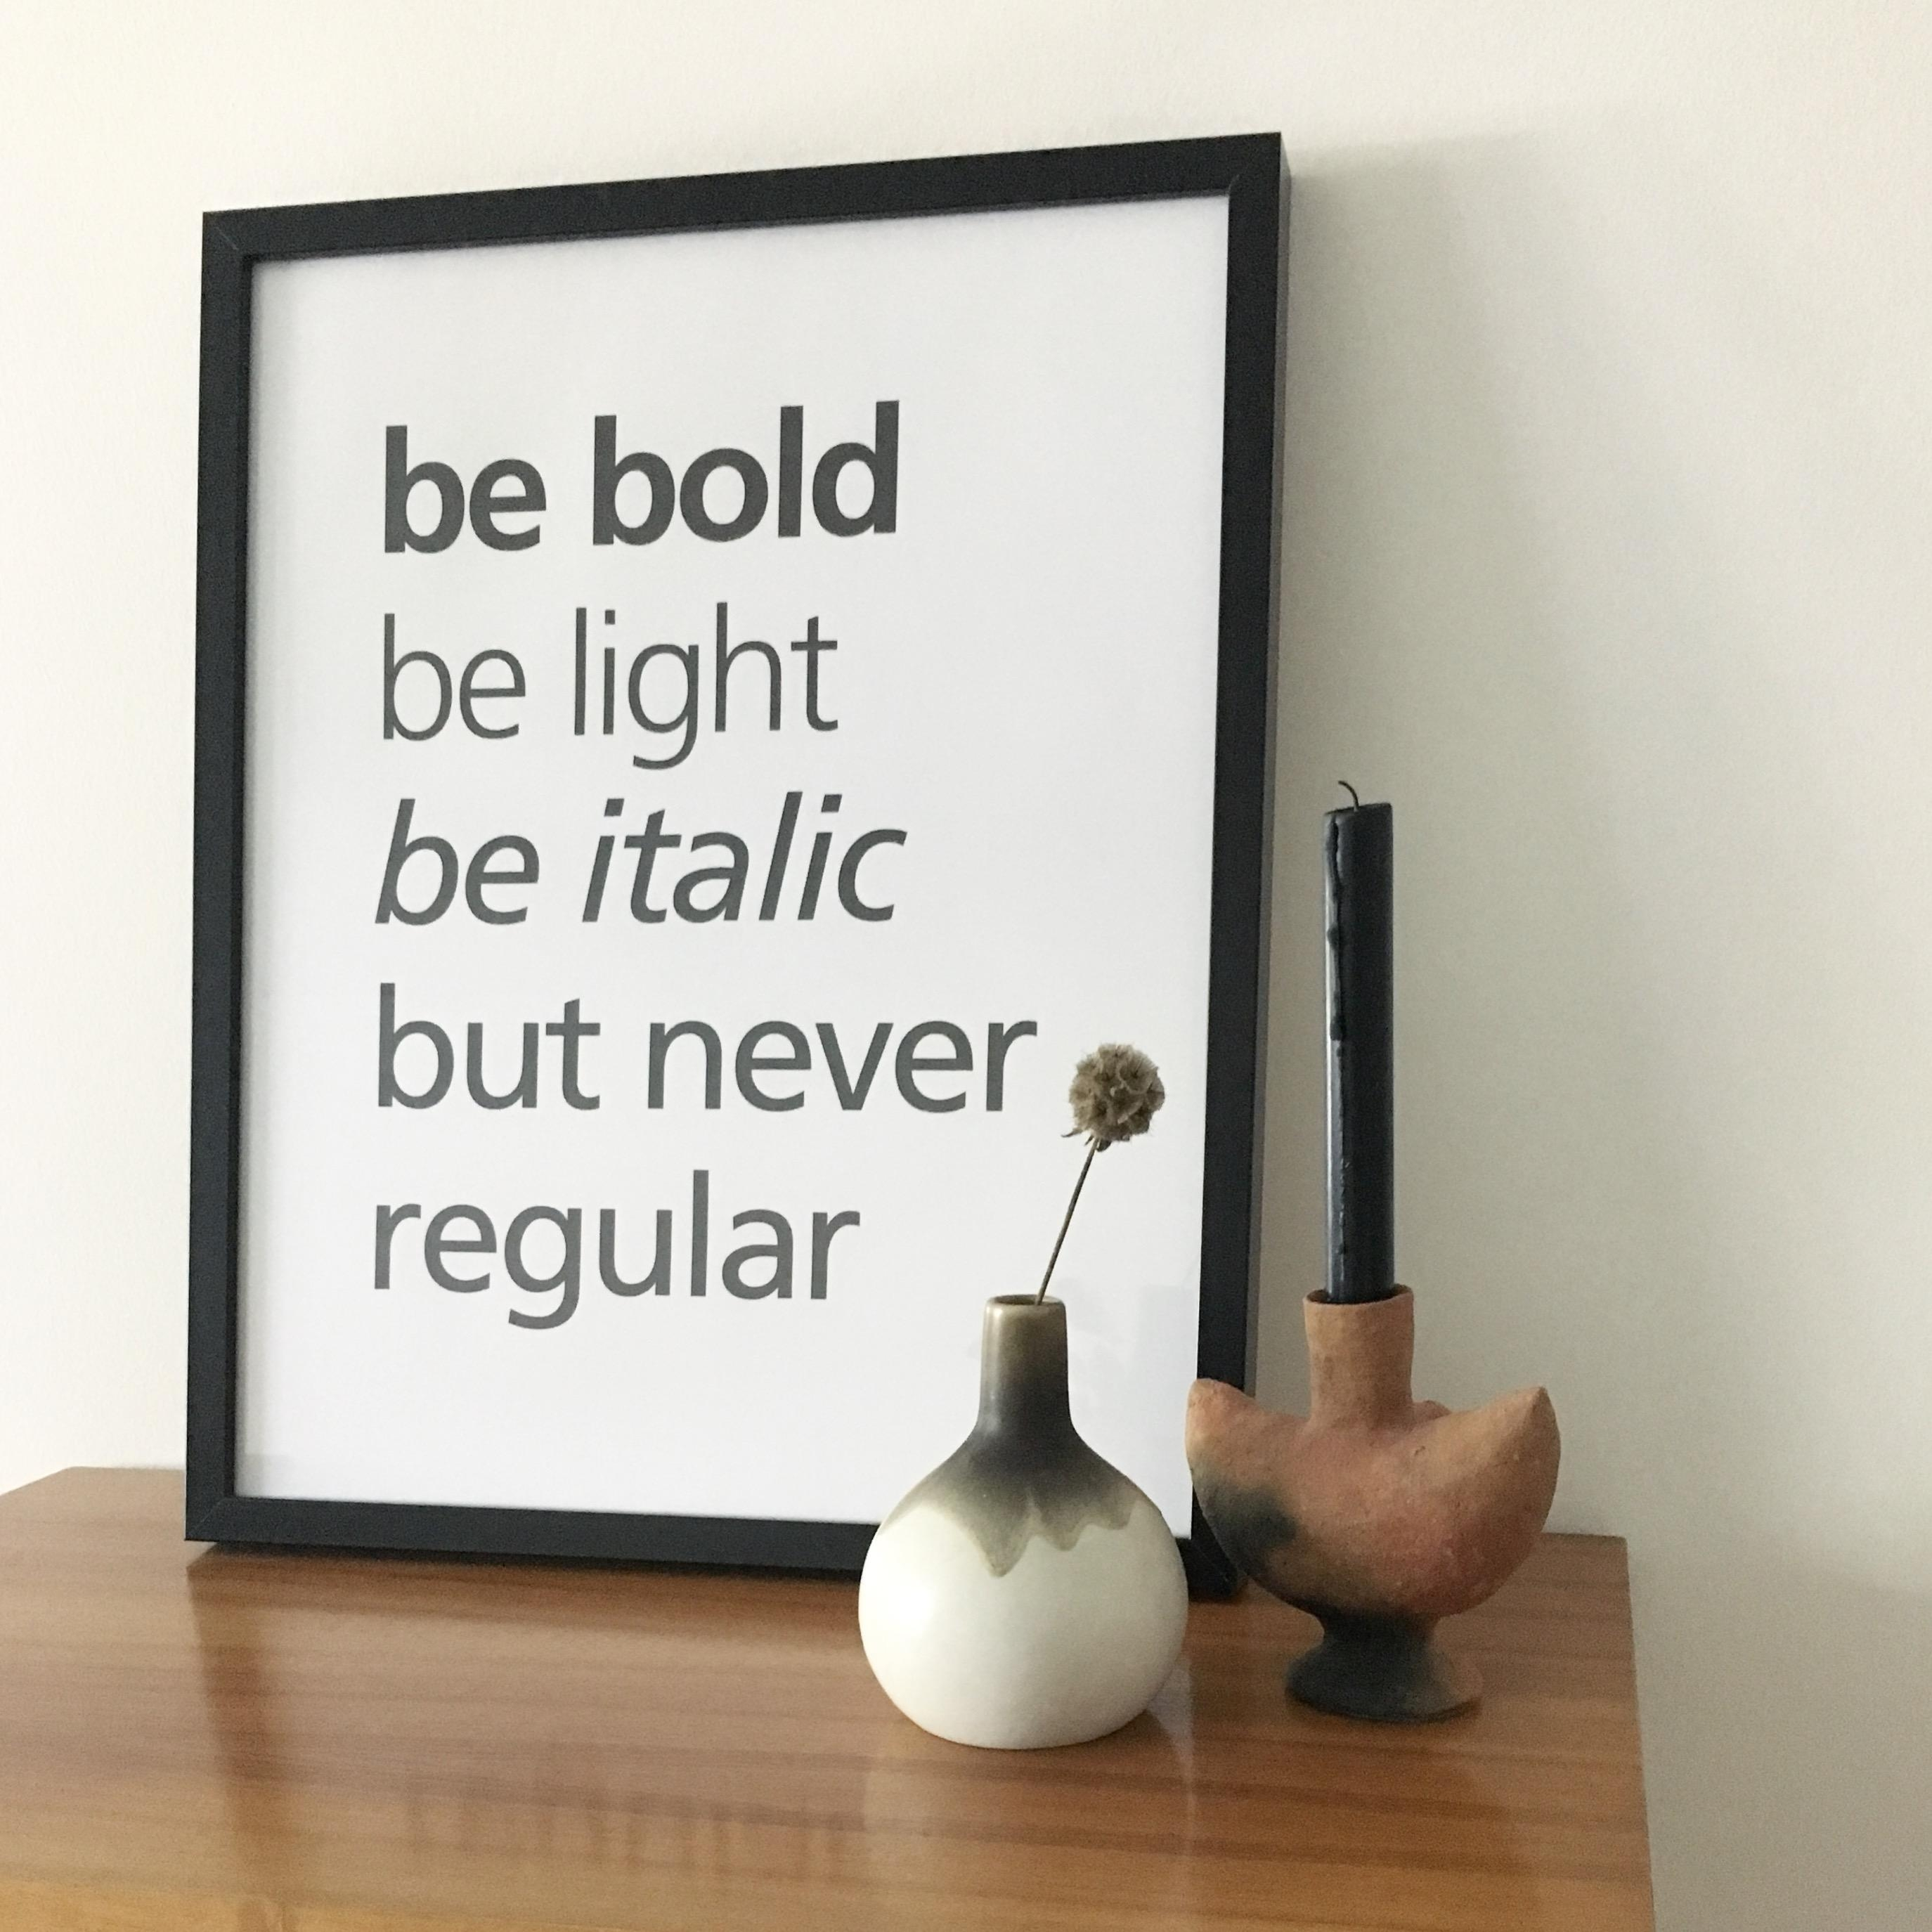 Be bold, be light, be italic, but never regular #midcentury #vintage #happyday #happysunday #flohmarkt #secondhand